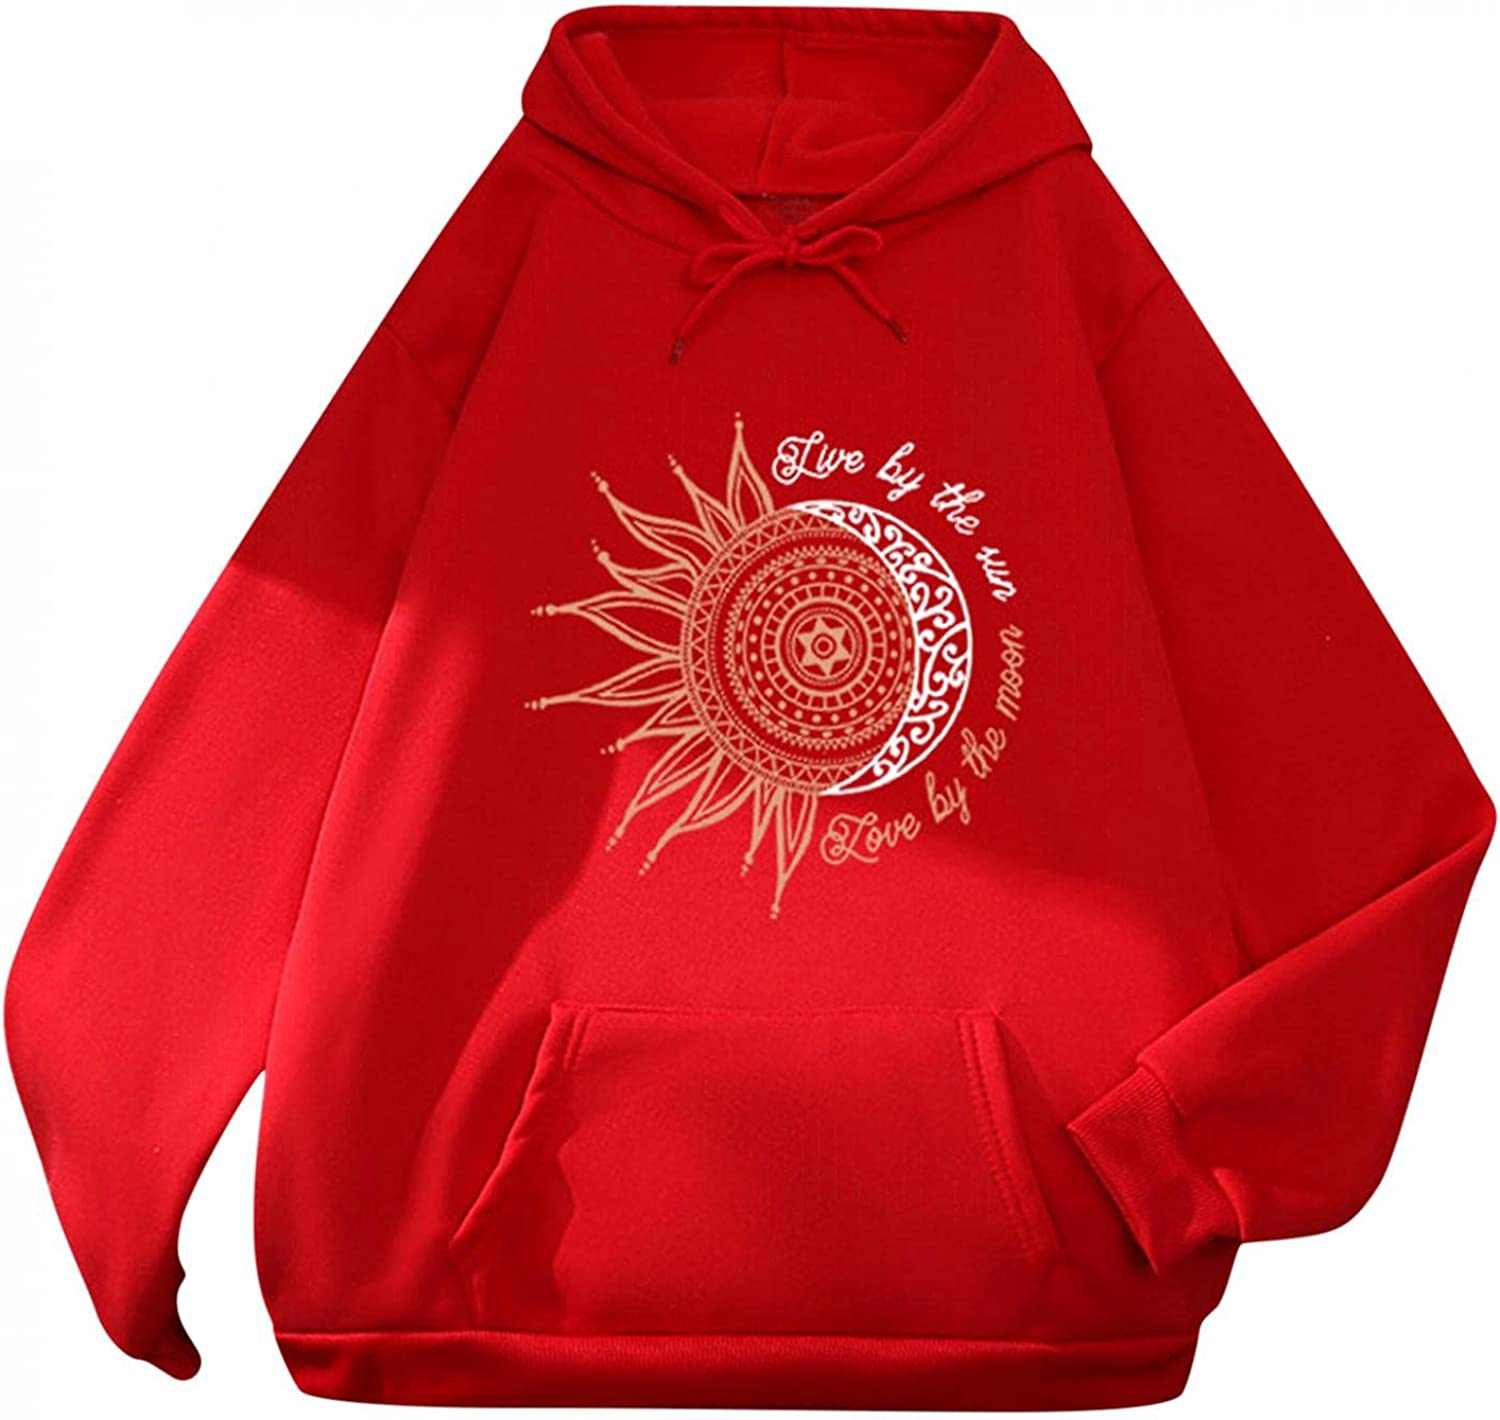 Hotkey Hoodies for Women, Womens Hooded Sweatshirt Sun & Moon Letter Print Pullover Long Sleeve Tops with Large Front Pocket